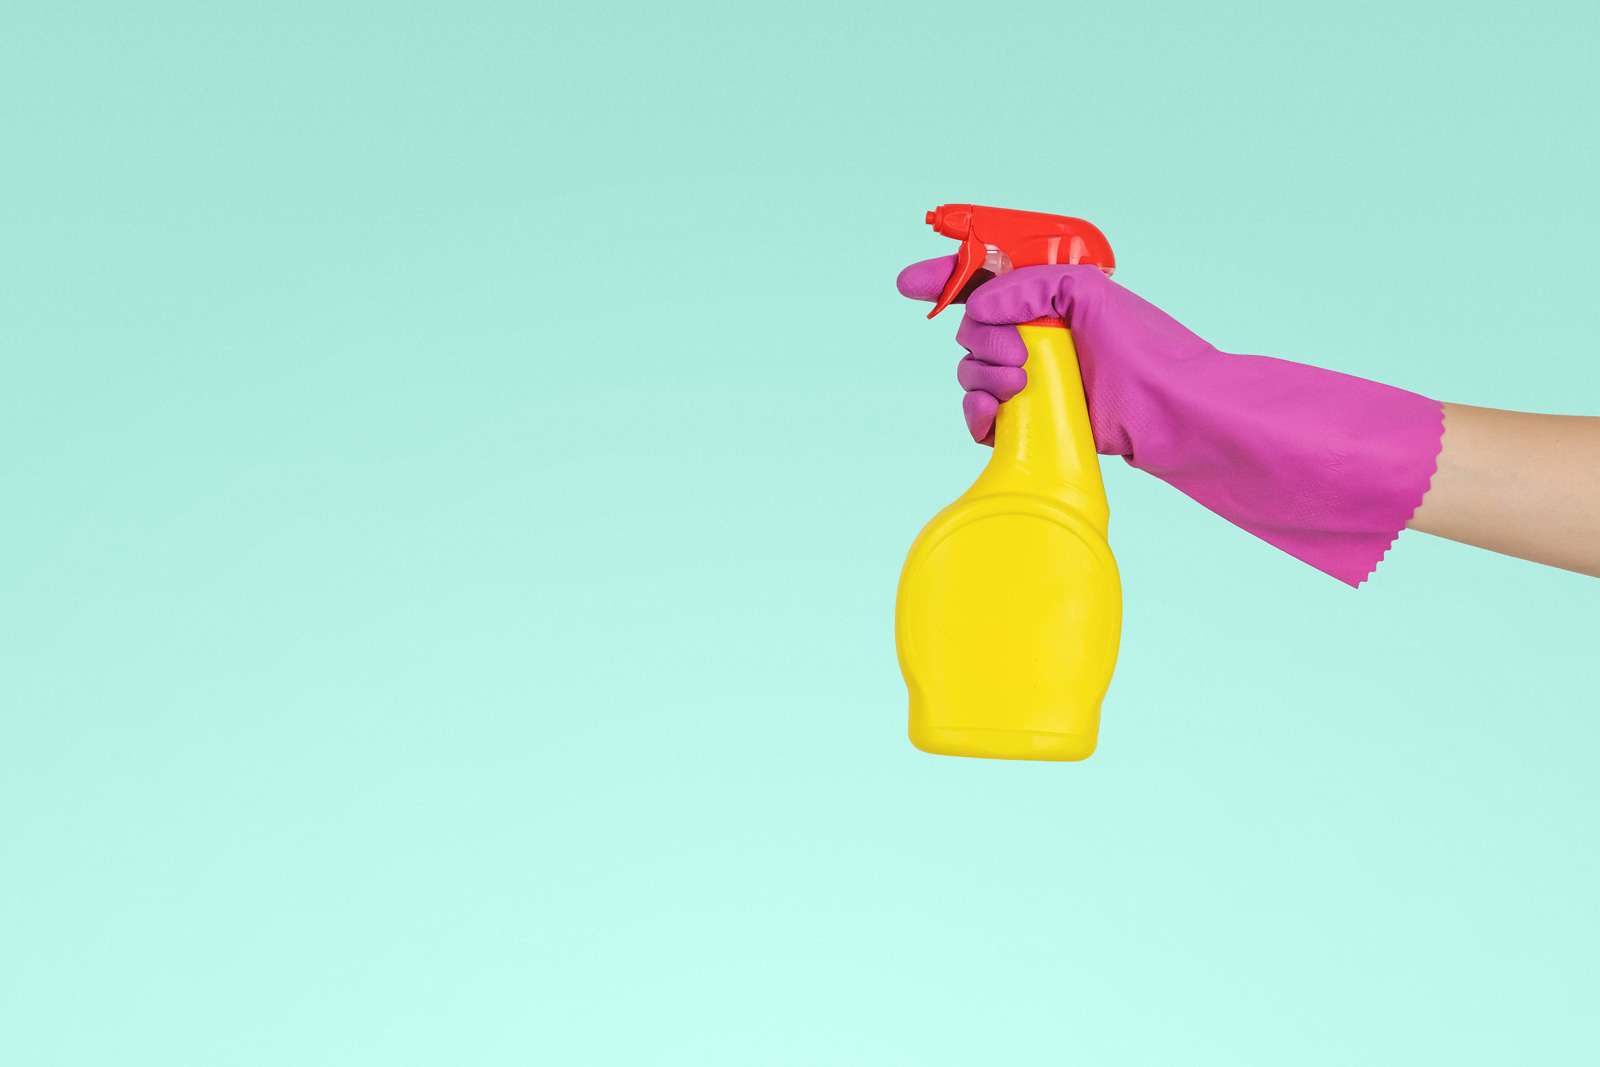 A person with a pick glove holding a yellow spray bottle with orange on top